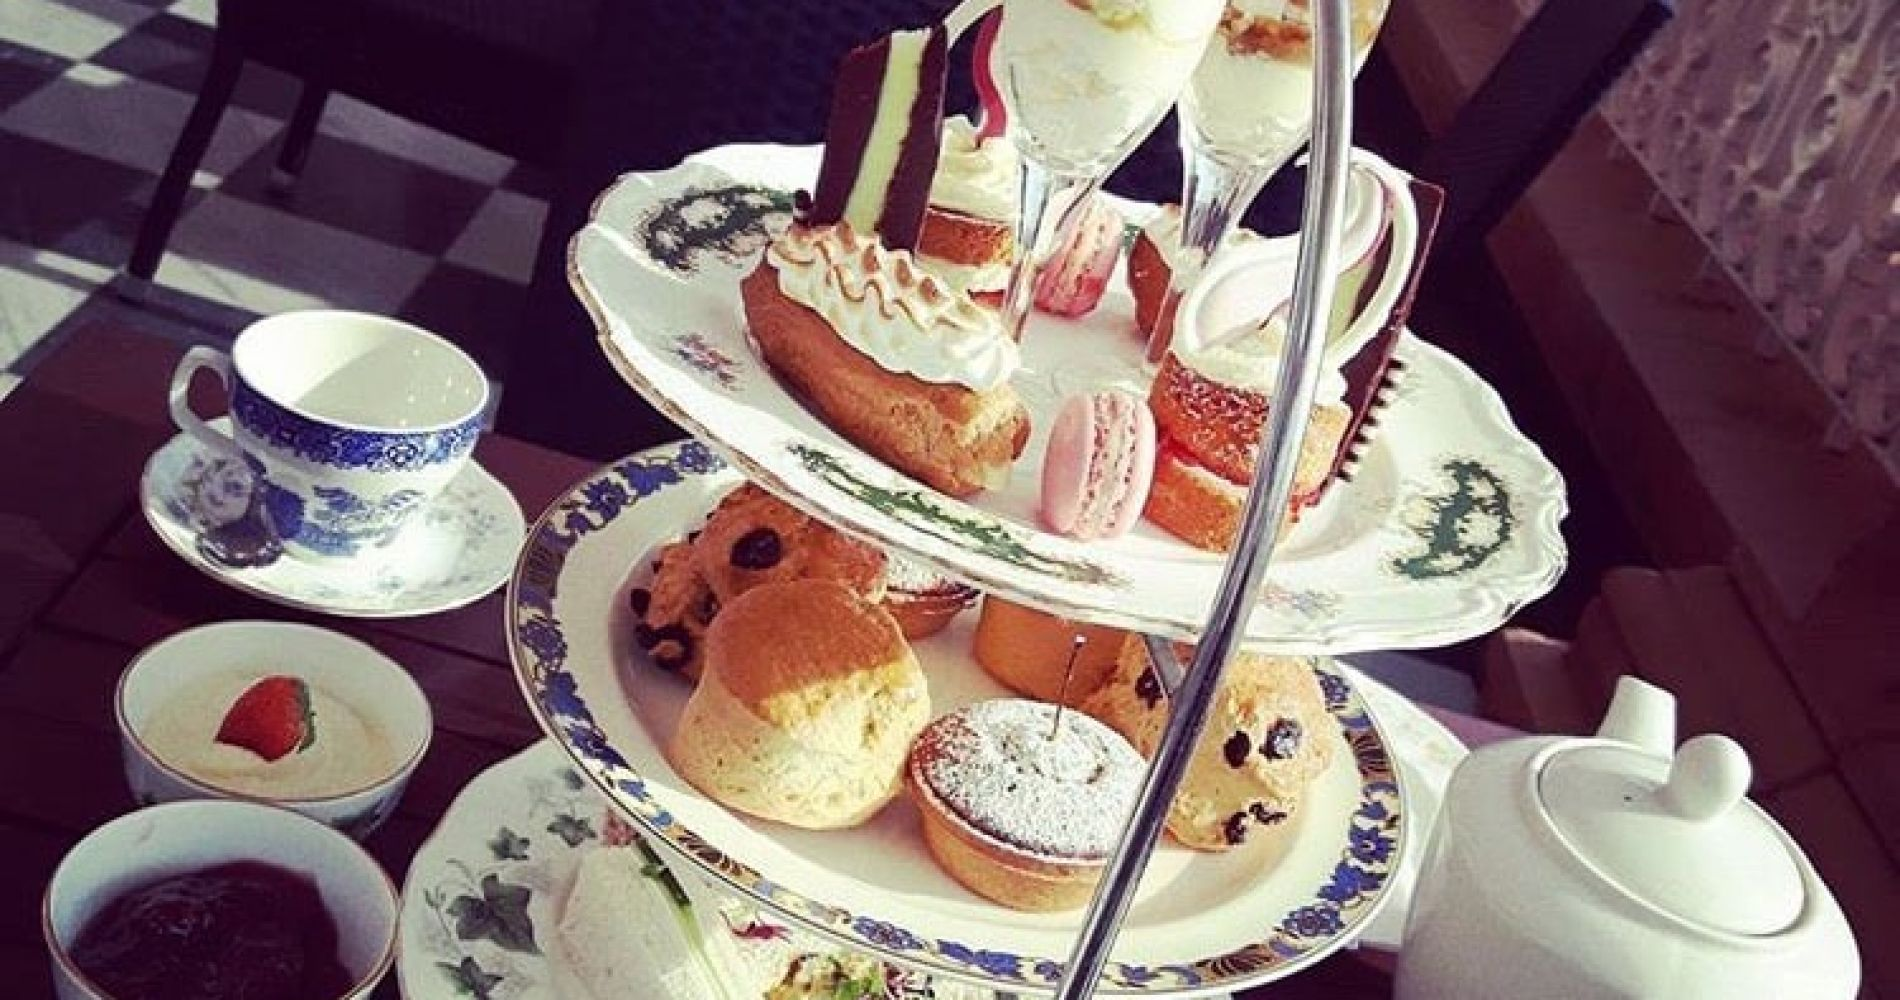 Afternoon tea at the Hilton Brighton Metropole for Two